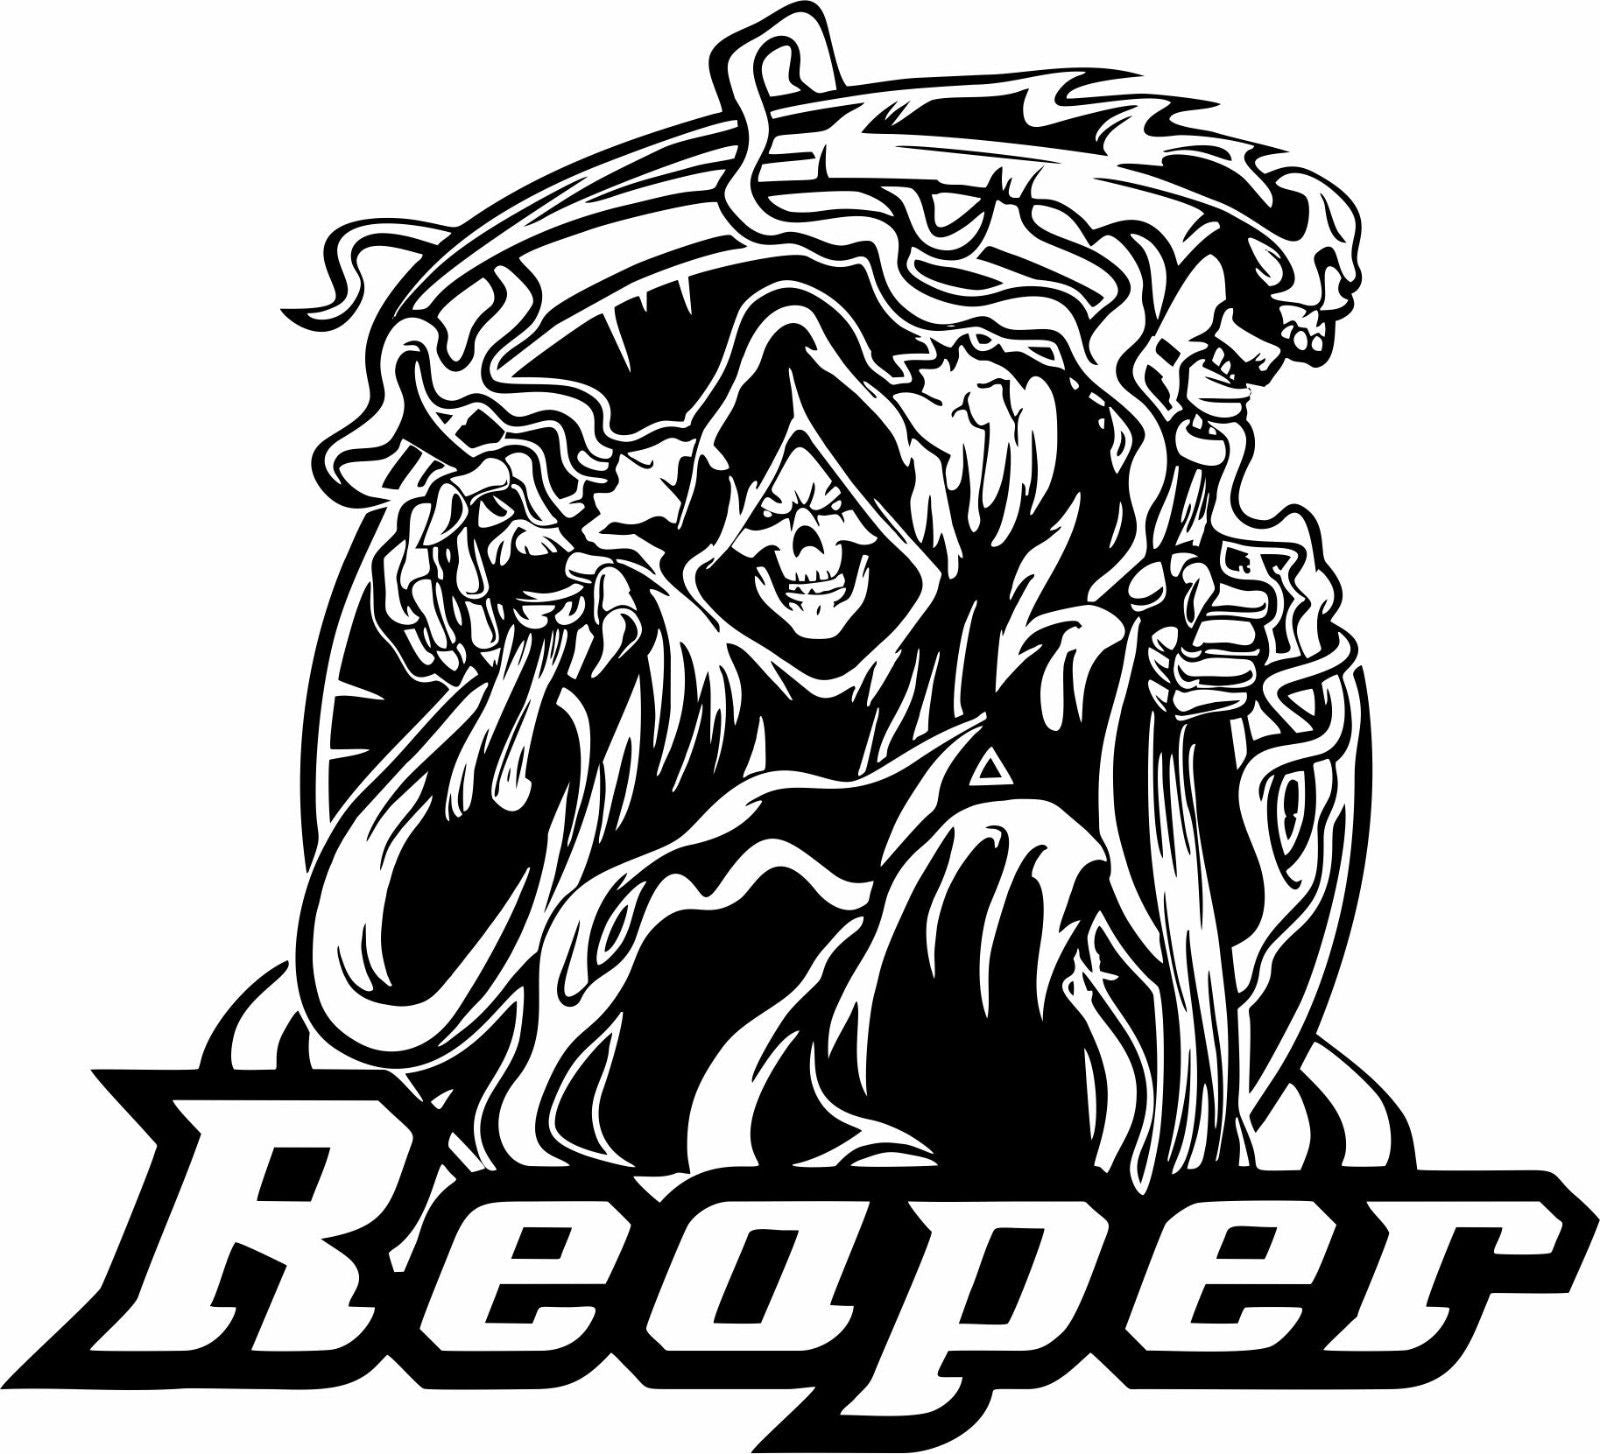 "Grim Reaper Scythe Death Shinigami Scary Car Truck Window Vinyl Decal Sticker - 11"" Long Edge"